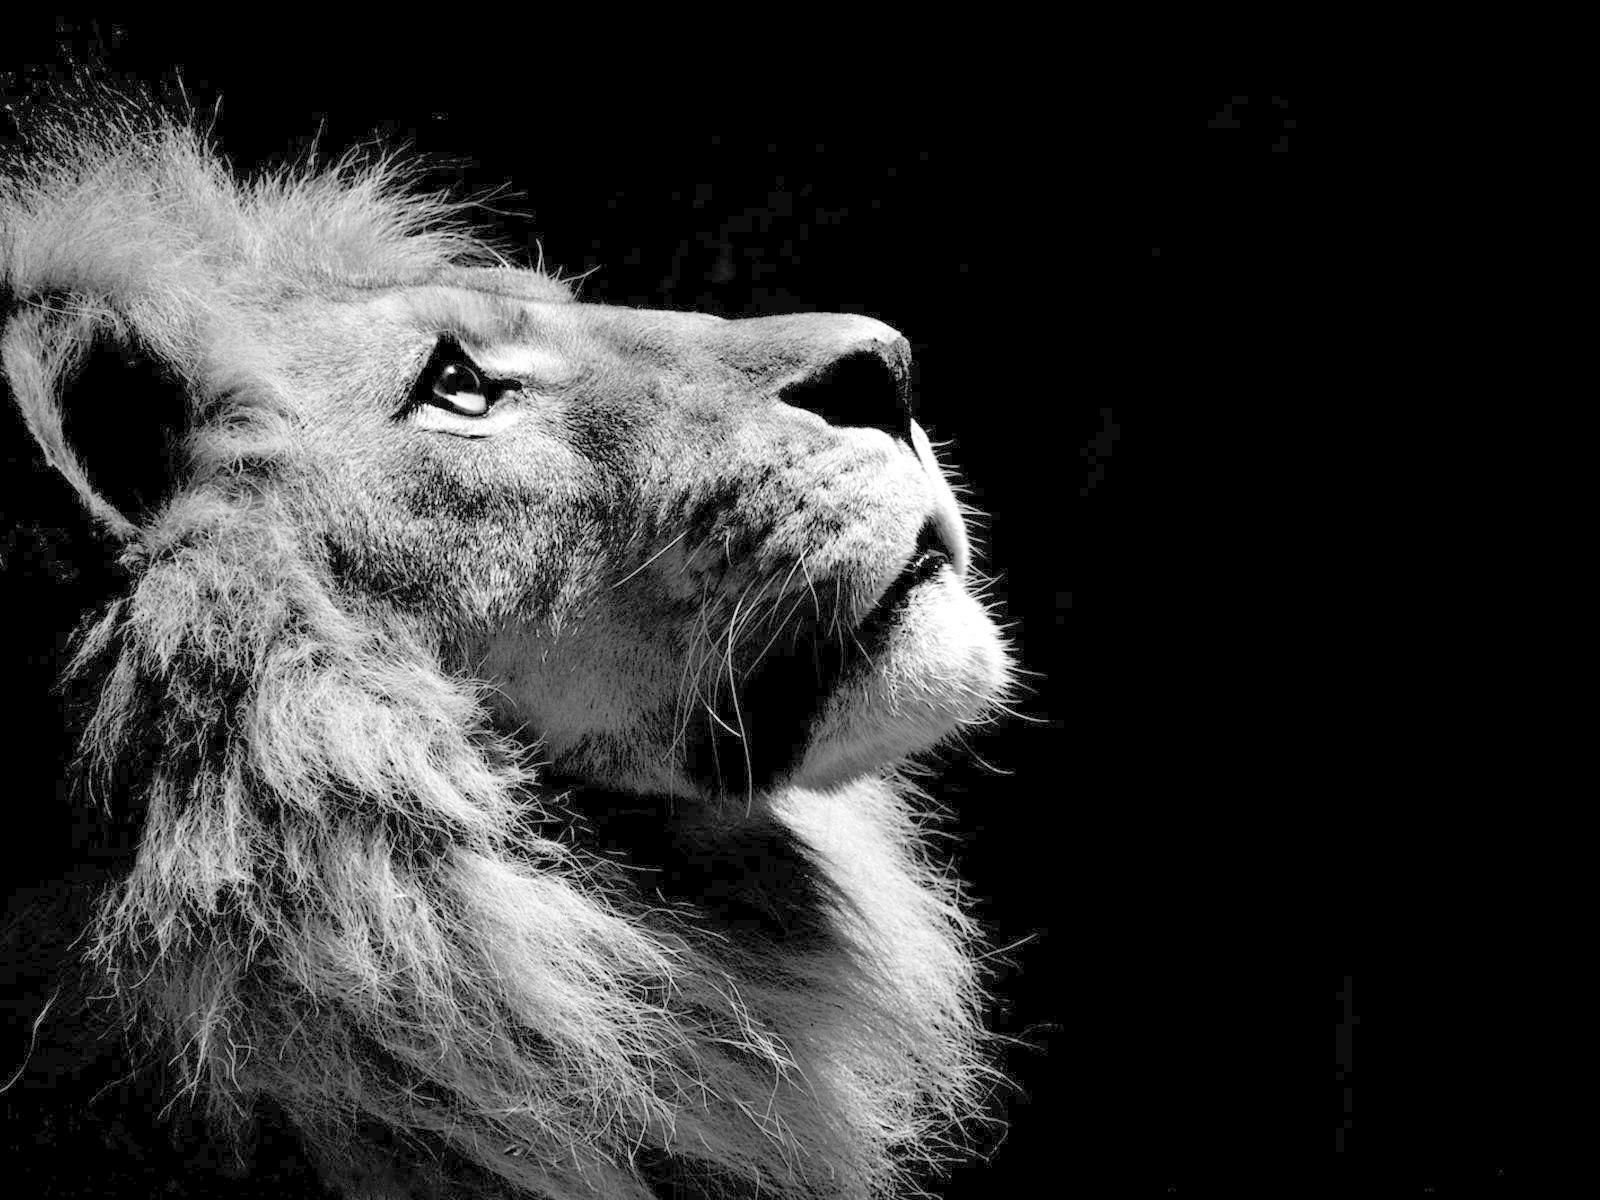 Black White Lion Wallpapers Pictures Tattoos Frauen Lion Wallpaper Black And White 1600x1200 Wallpaper Teahub Io